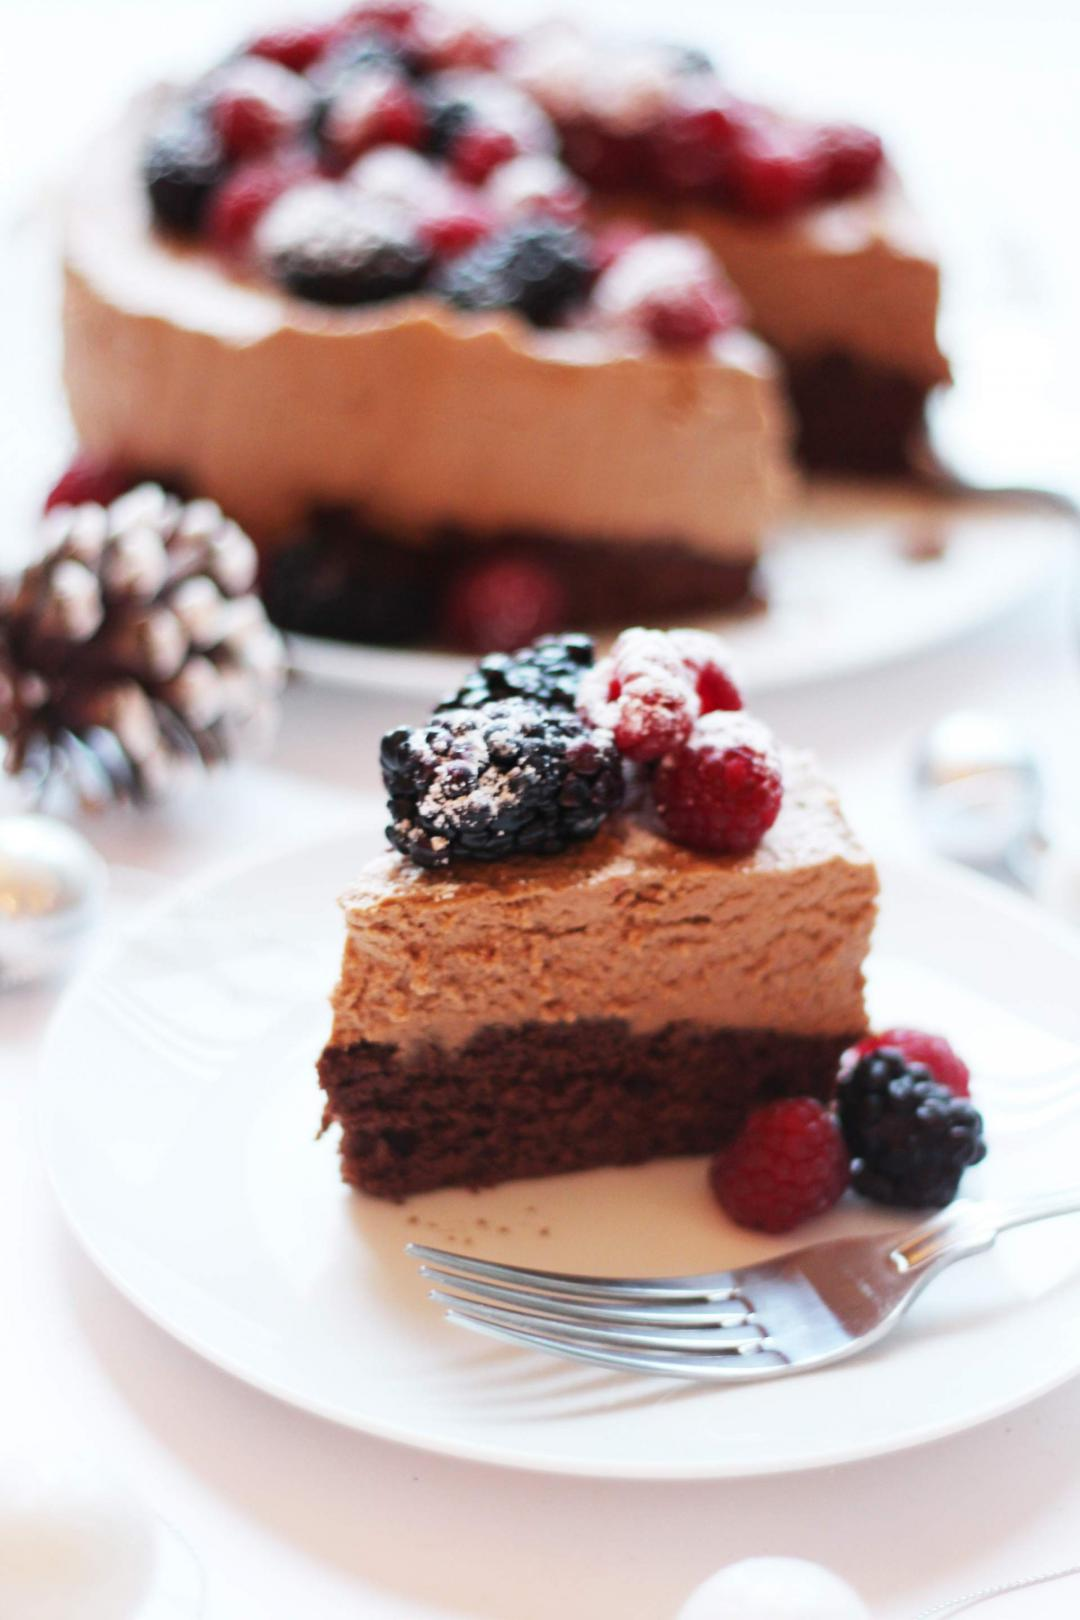 Alternative Christmas Cake.Lindt Chocolate Mousse Cake For Christmas Cake Haters